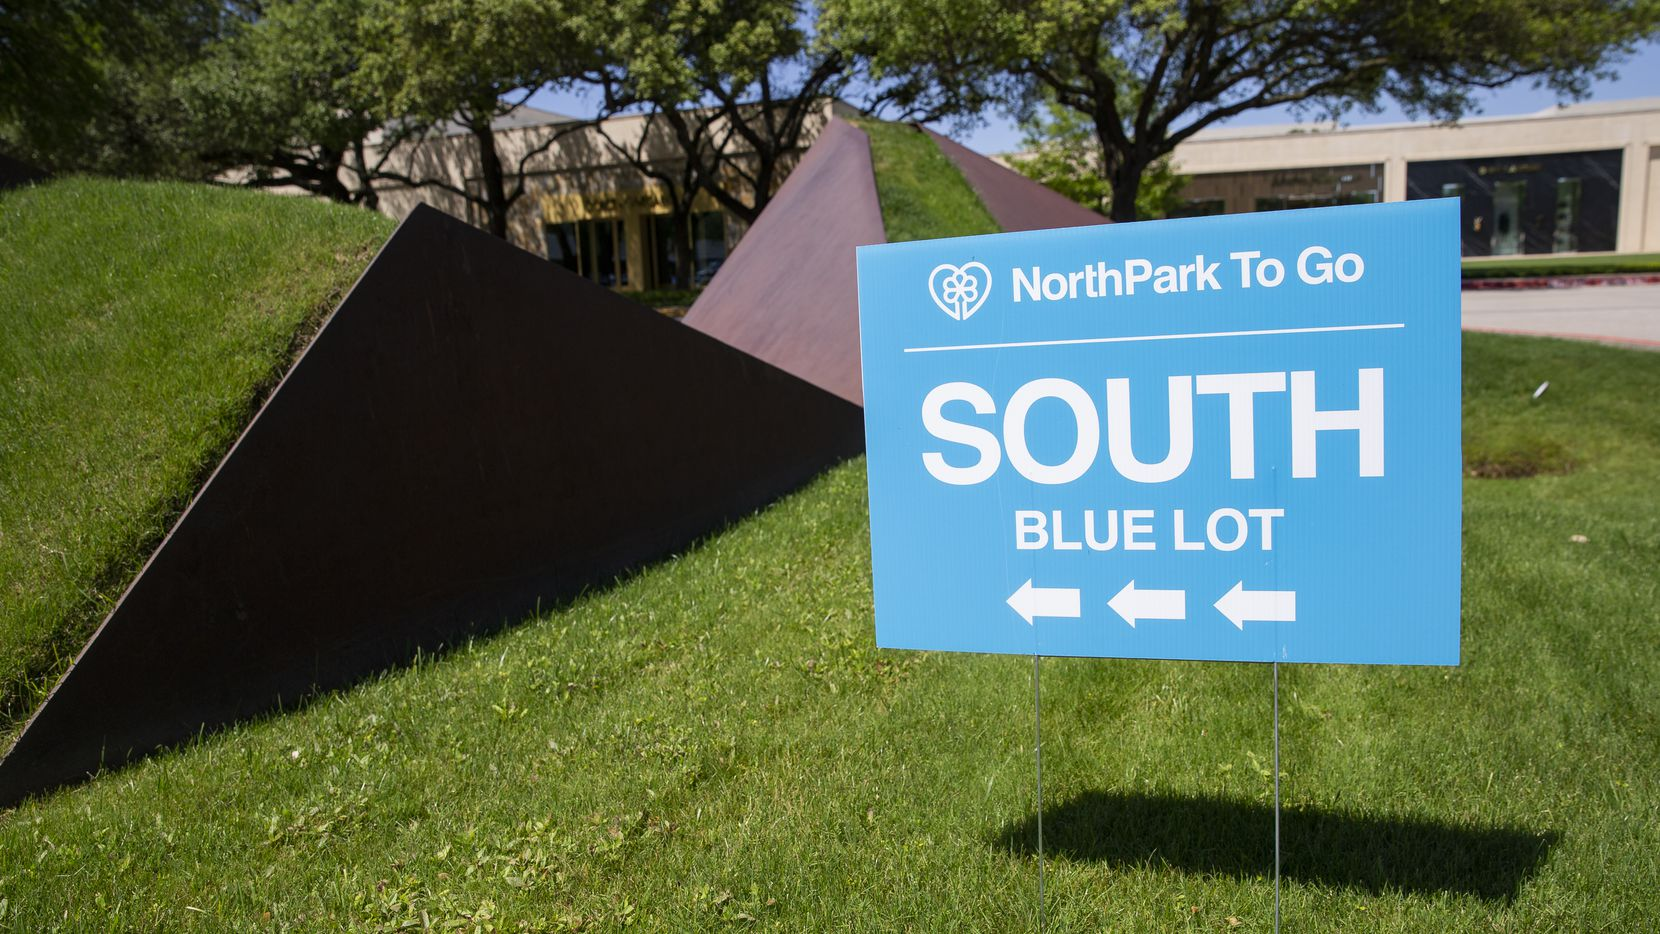 """NorthPark To Go signs direct customers to the blue lot for order pickups per Texas Gov. Greg Abbott's """"retail-to-go"""" phase of reopening the state's economy starting Friday, April 24, 2020."""